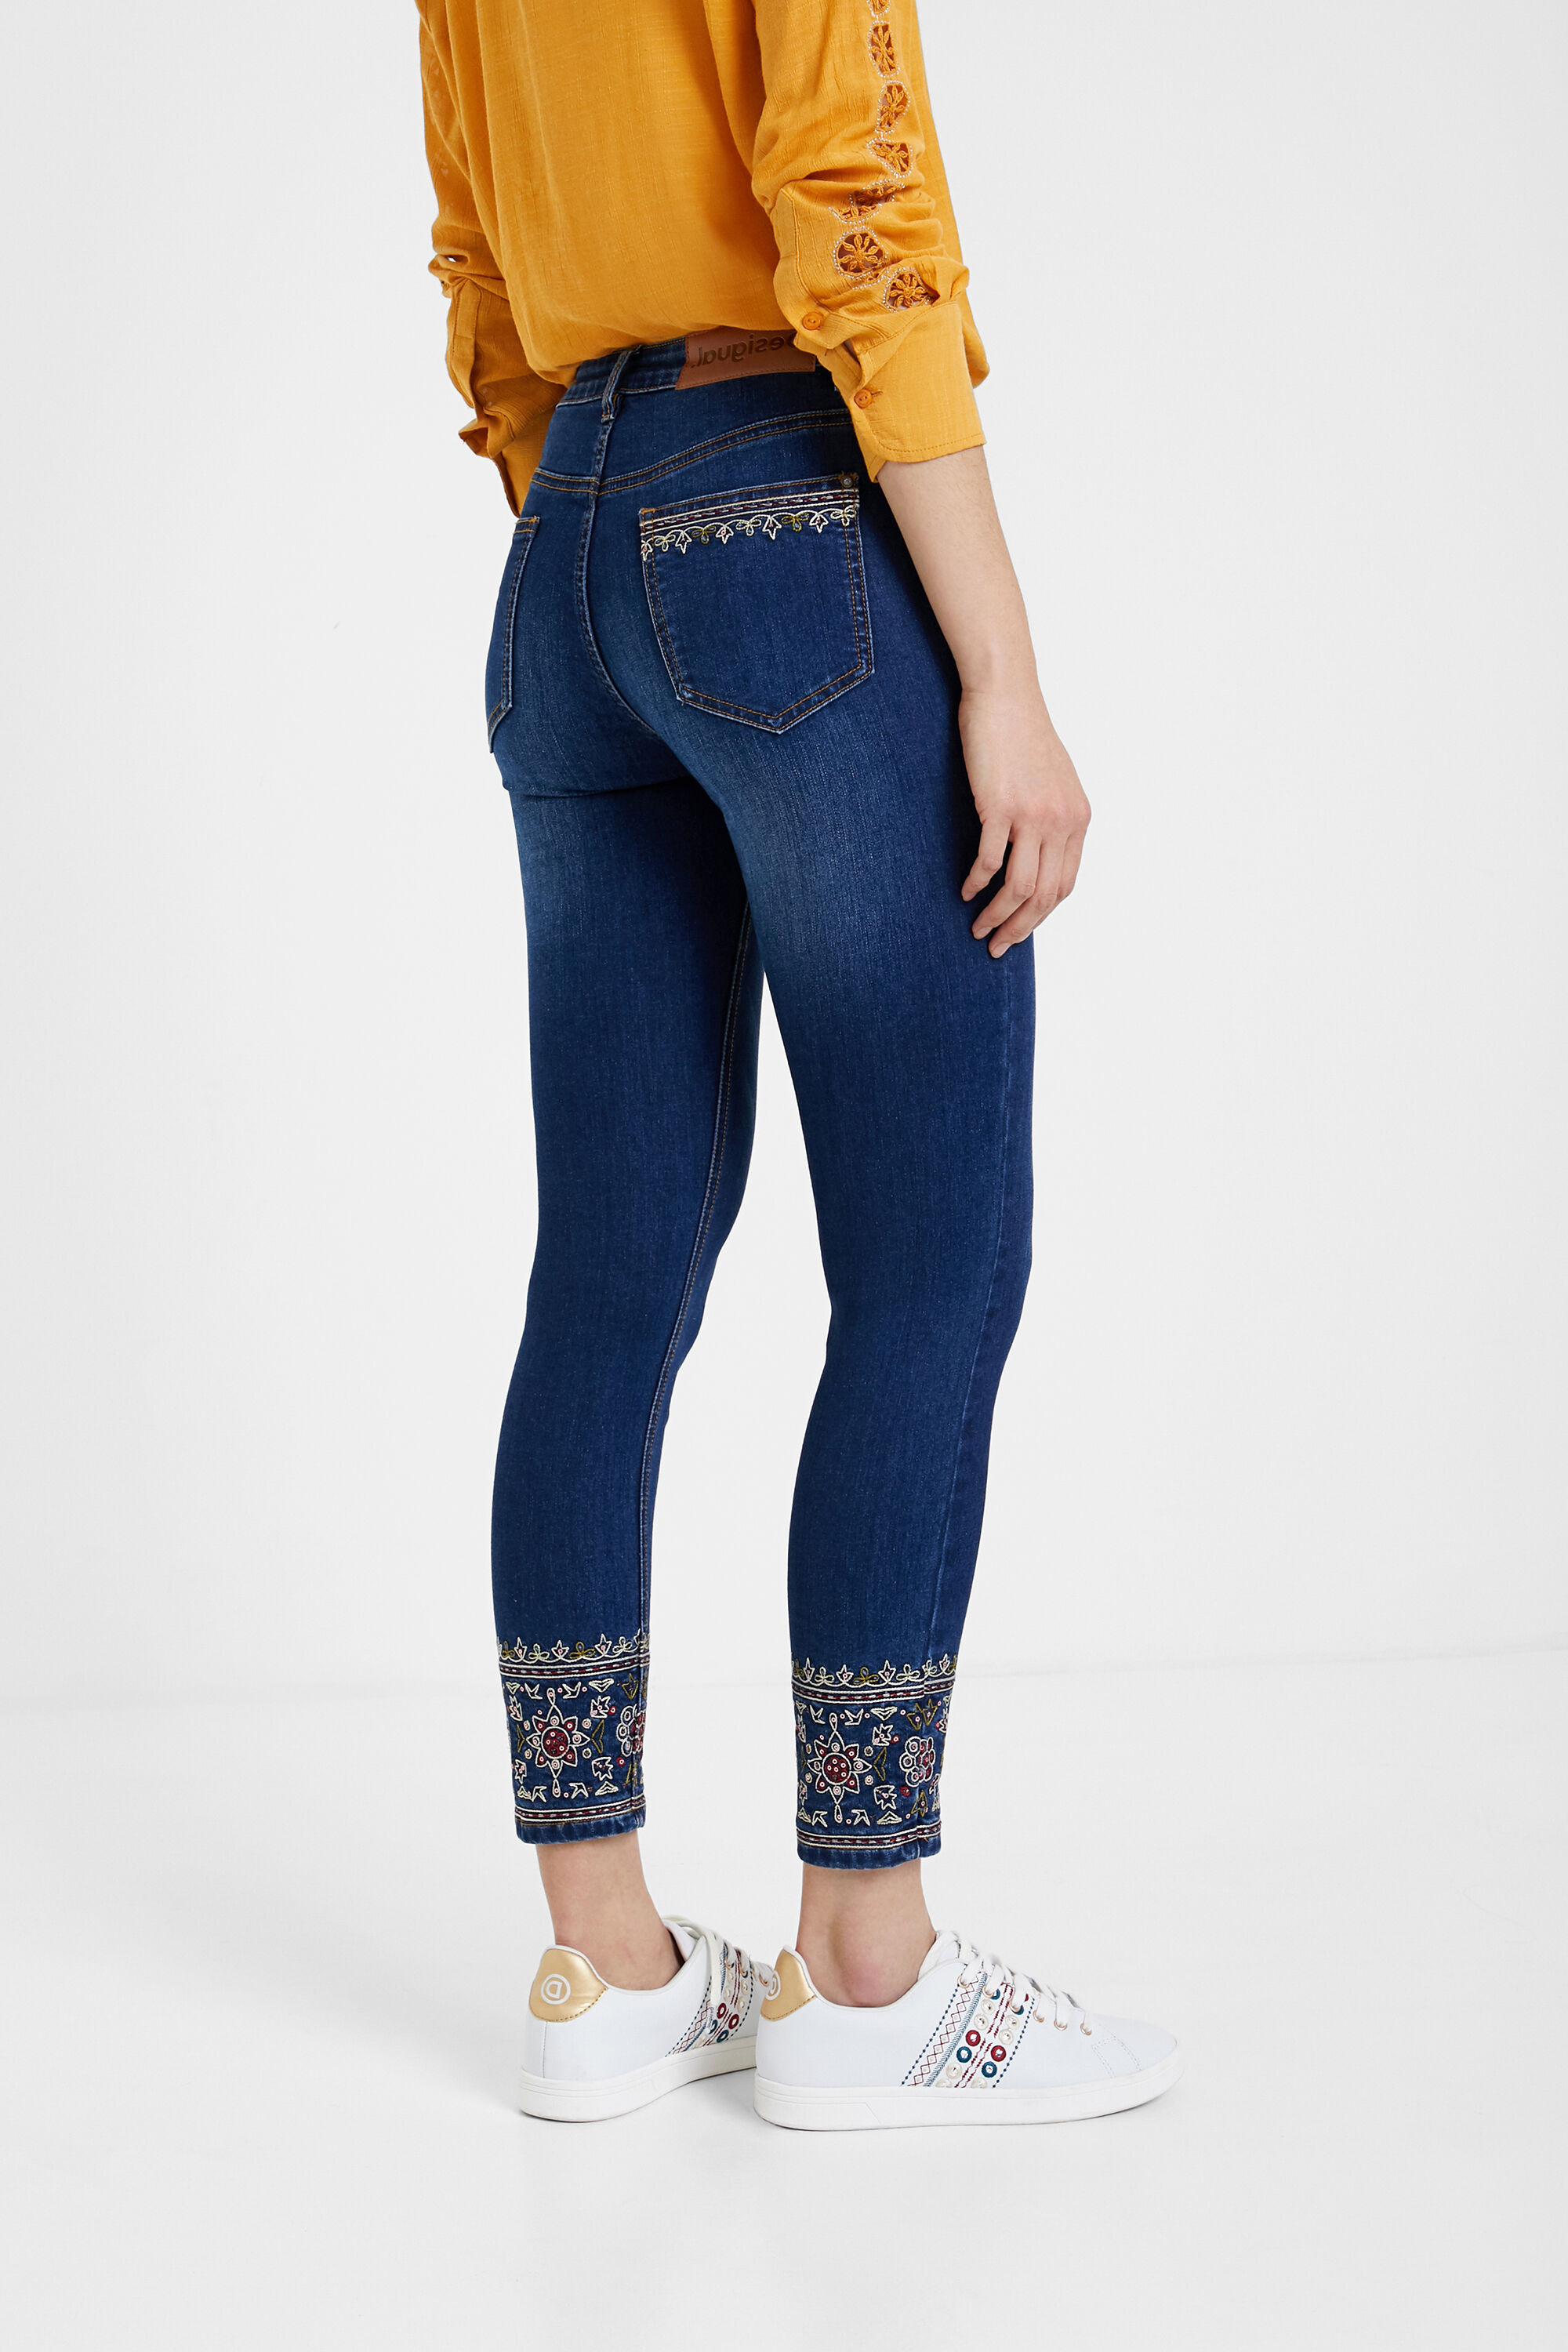 Skinny ethnic embroidery jeans - BLUE - 24